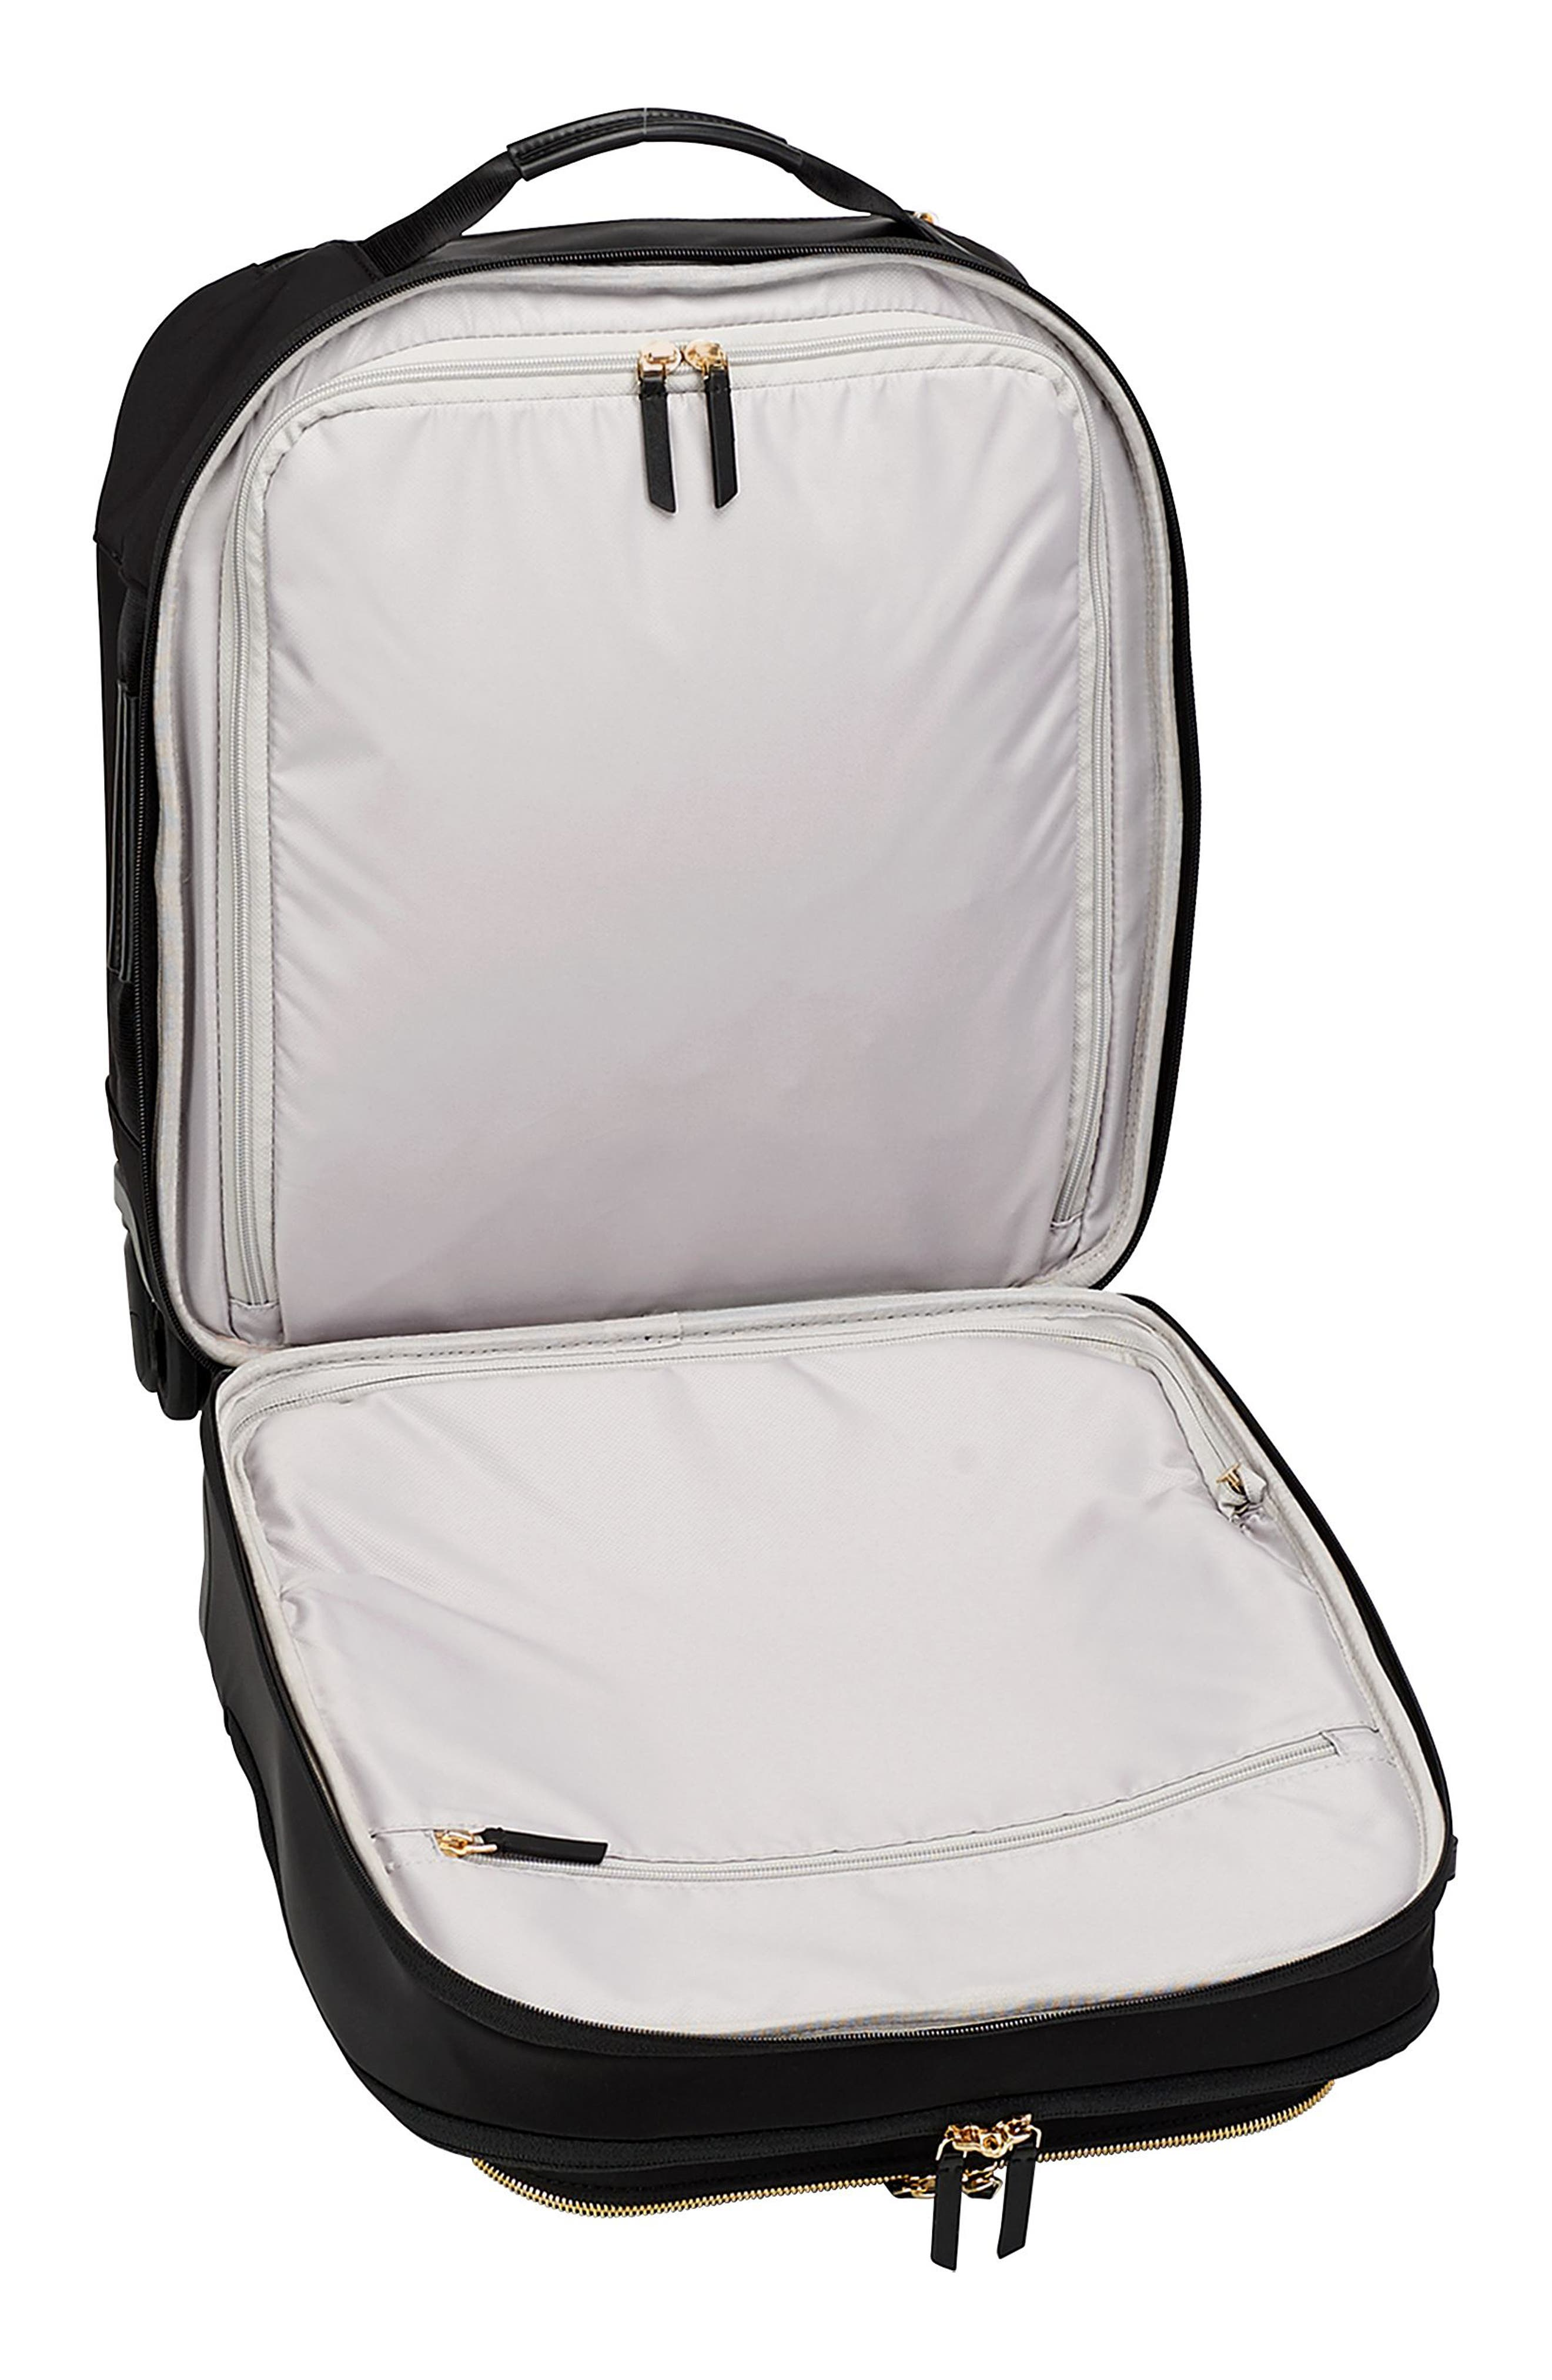 TUMI,                             Voyageur Osona 16-Inch Compact Carry-On,                             Alternate thumbnail 3, color,                             BLACK